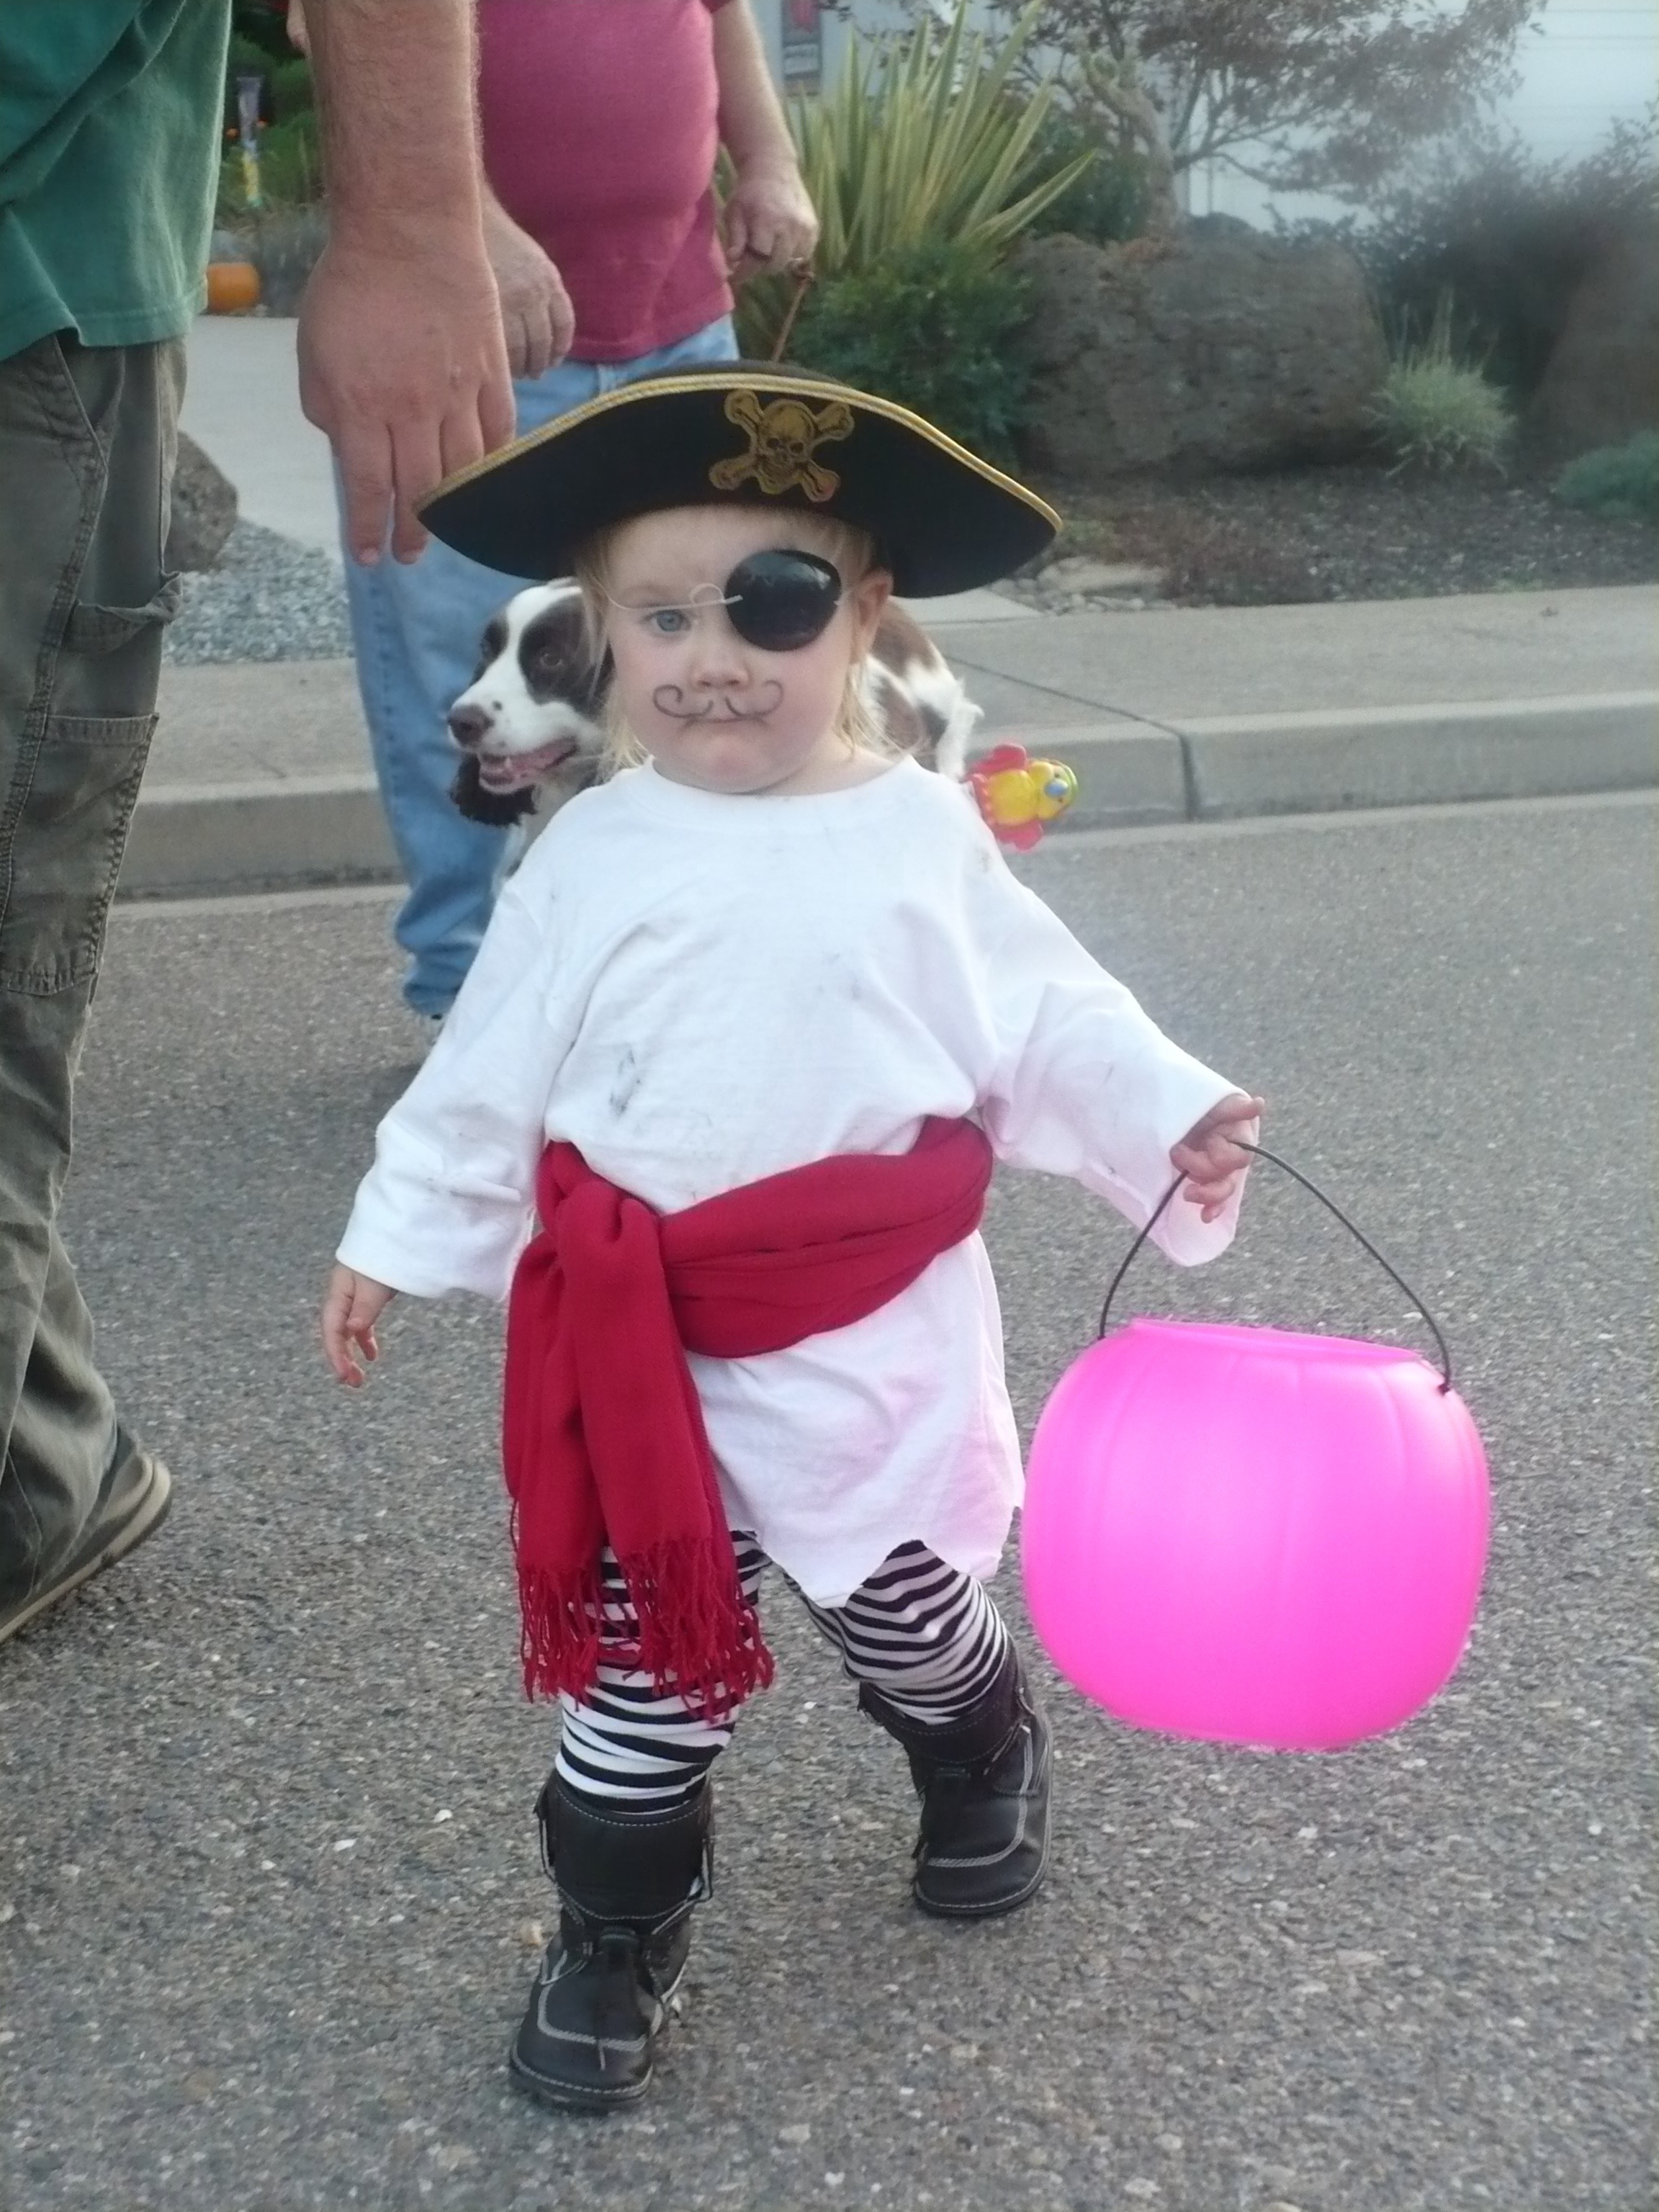 Little girl pirate costume homemade : homemade girls pirate costume  - Germanpascual.Com